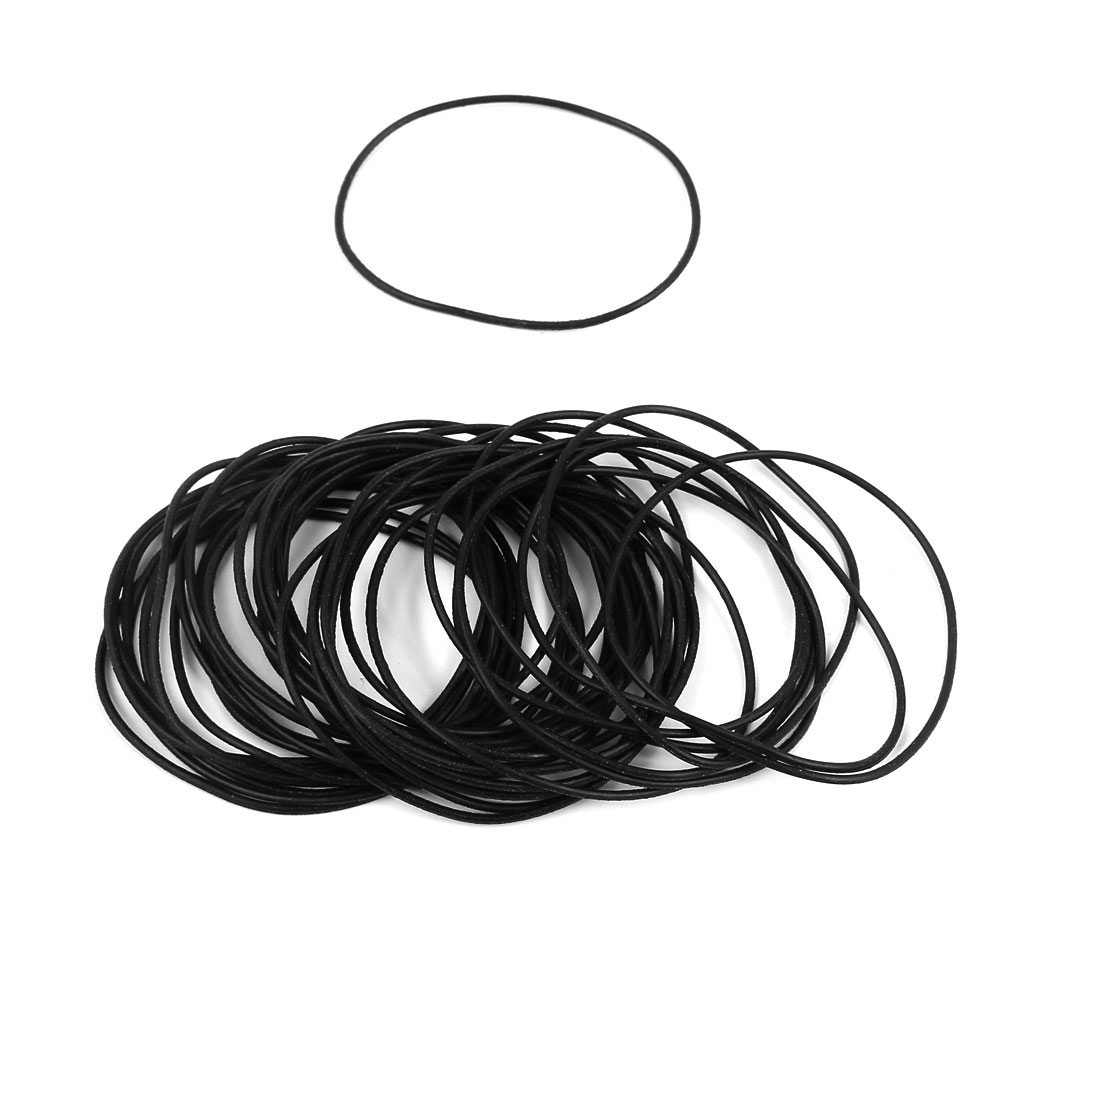 50Pcs Black 40mm x 1mm Nitrile Rubber O Ring NBR Oil Sealing Grommets